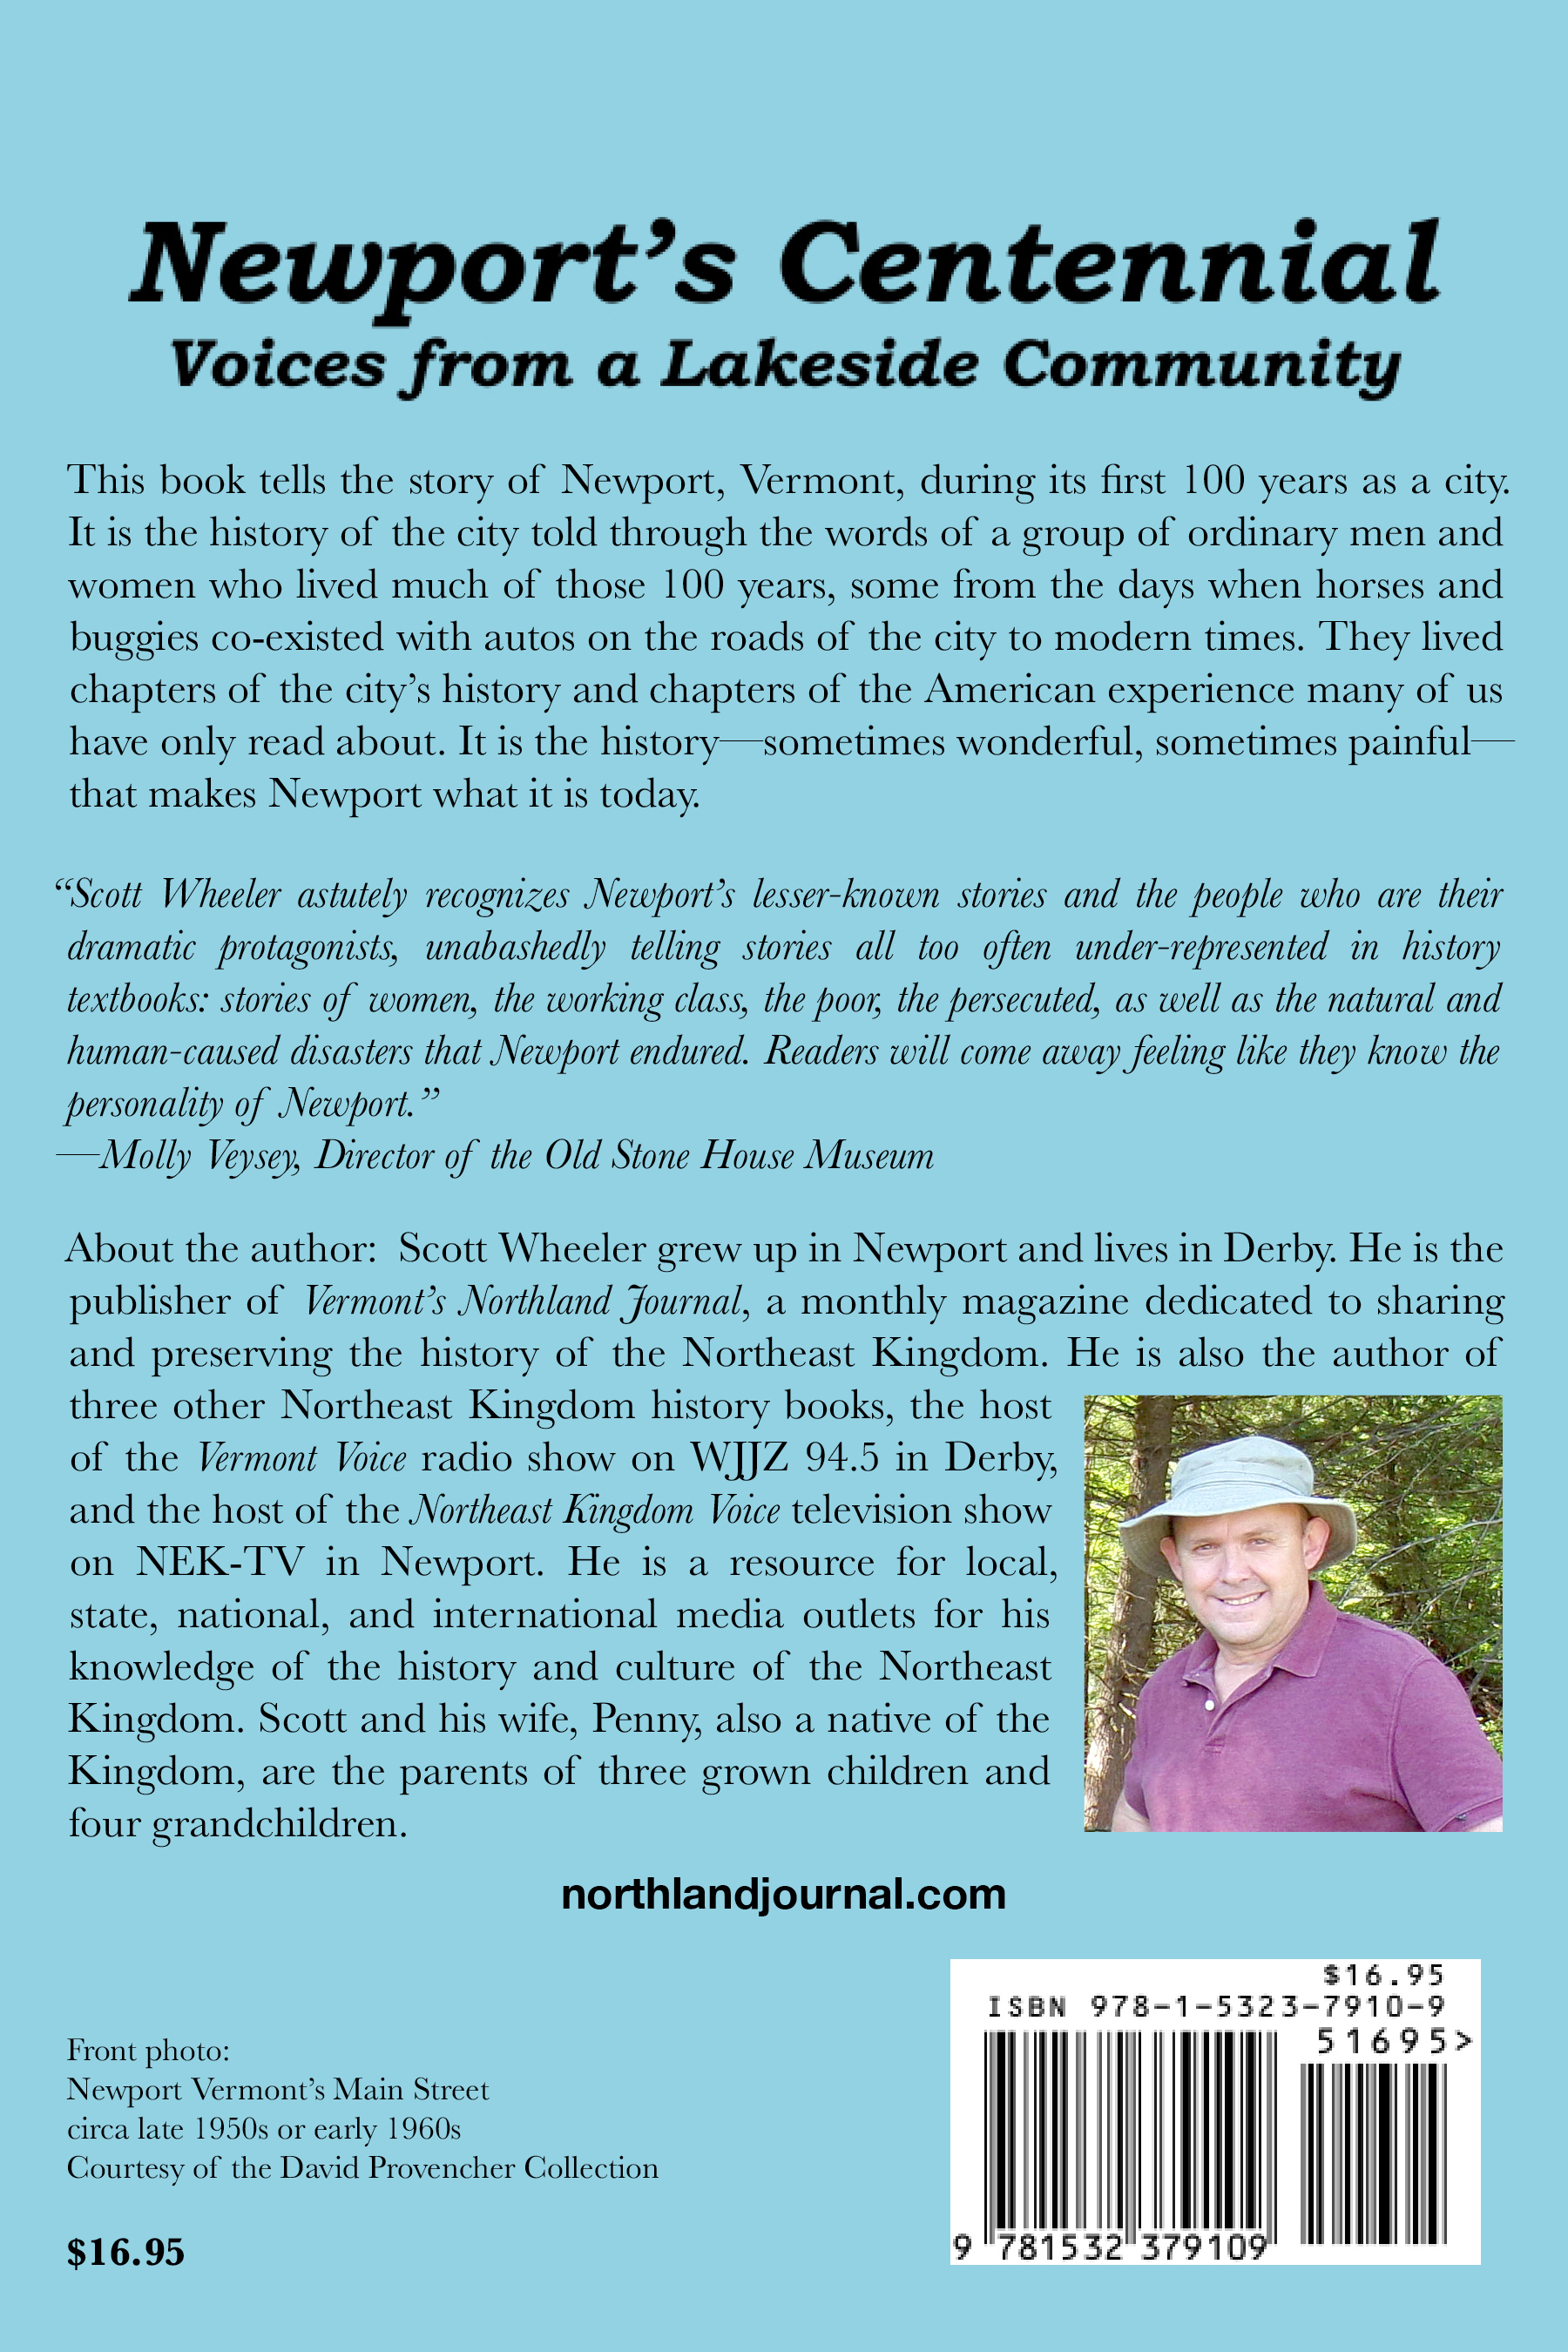 Newport's Centennial: Voices from a Lakeside Community